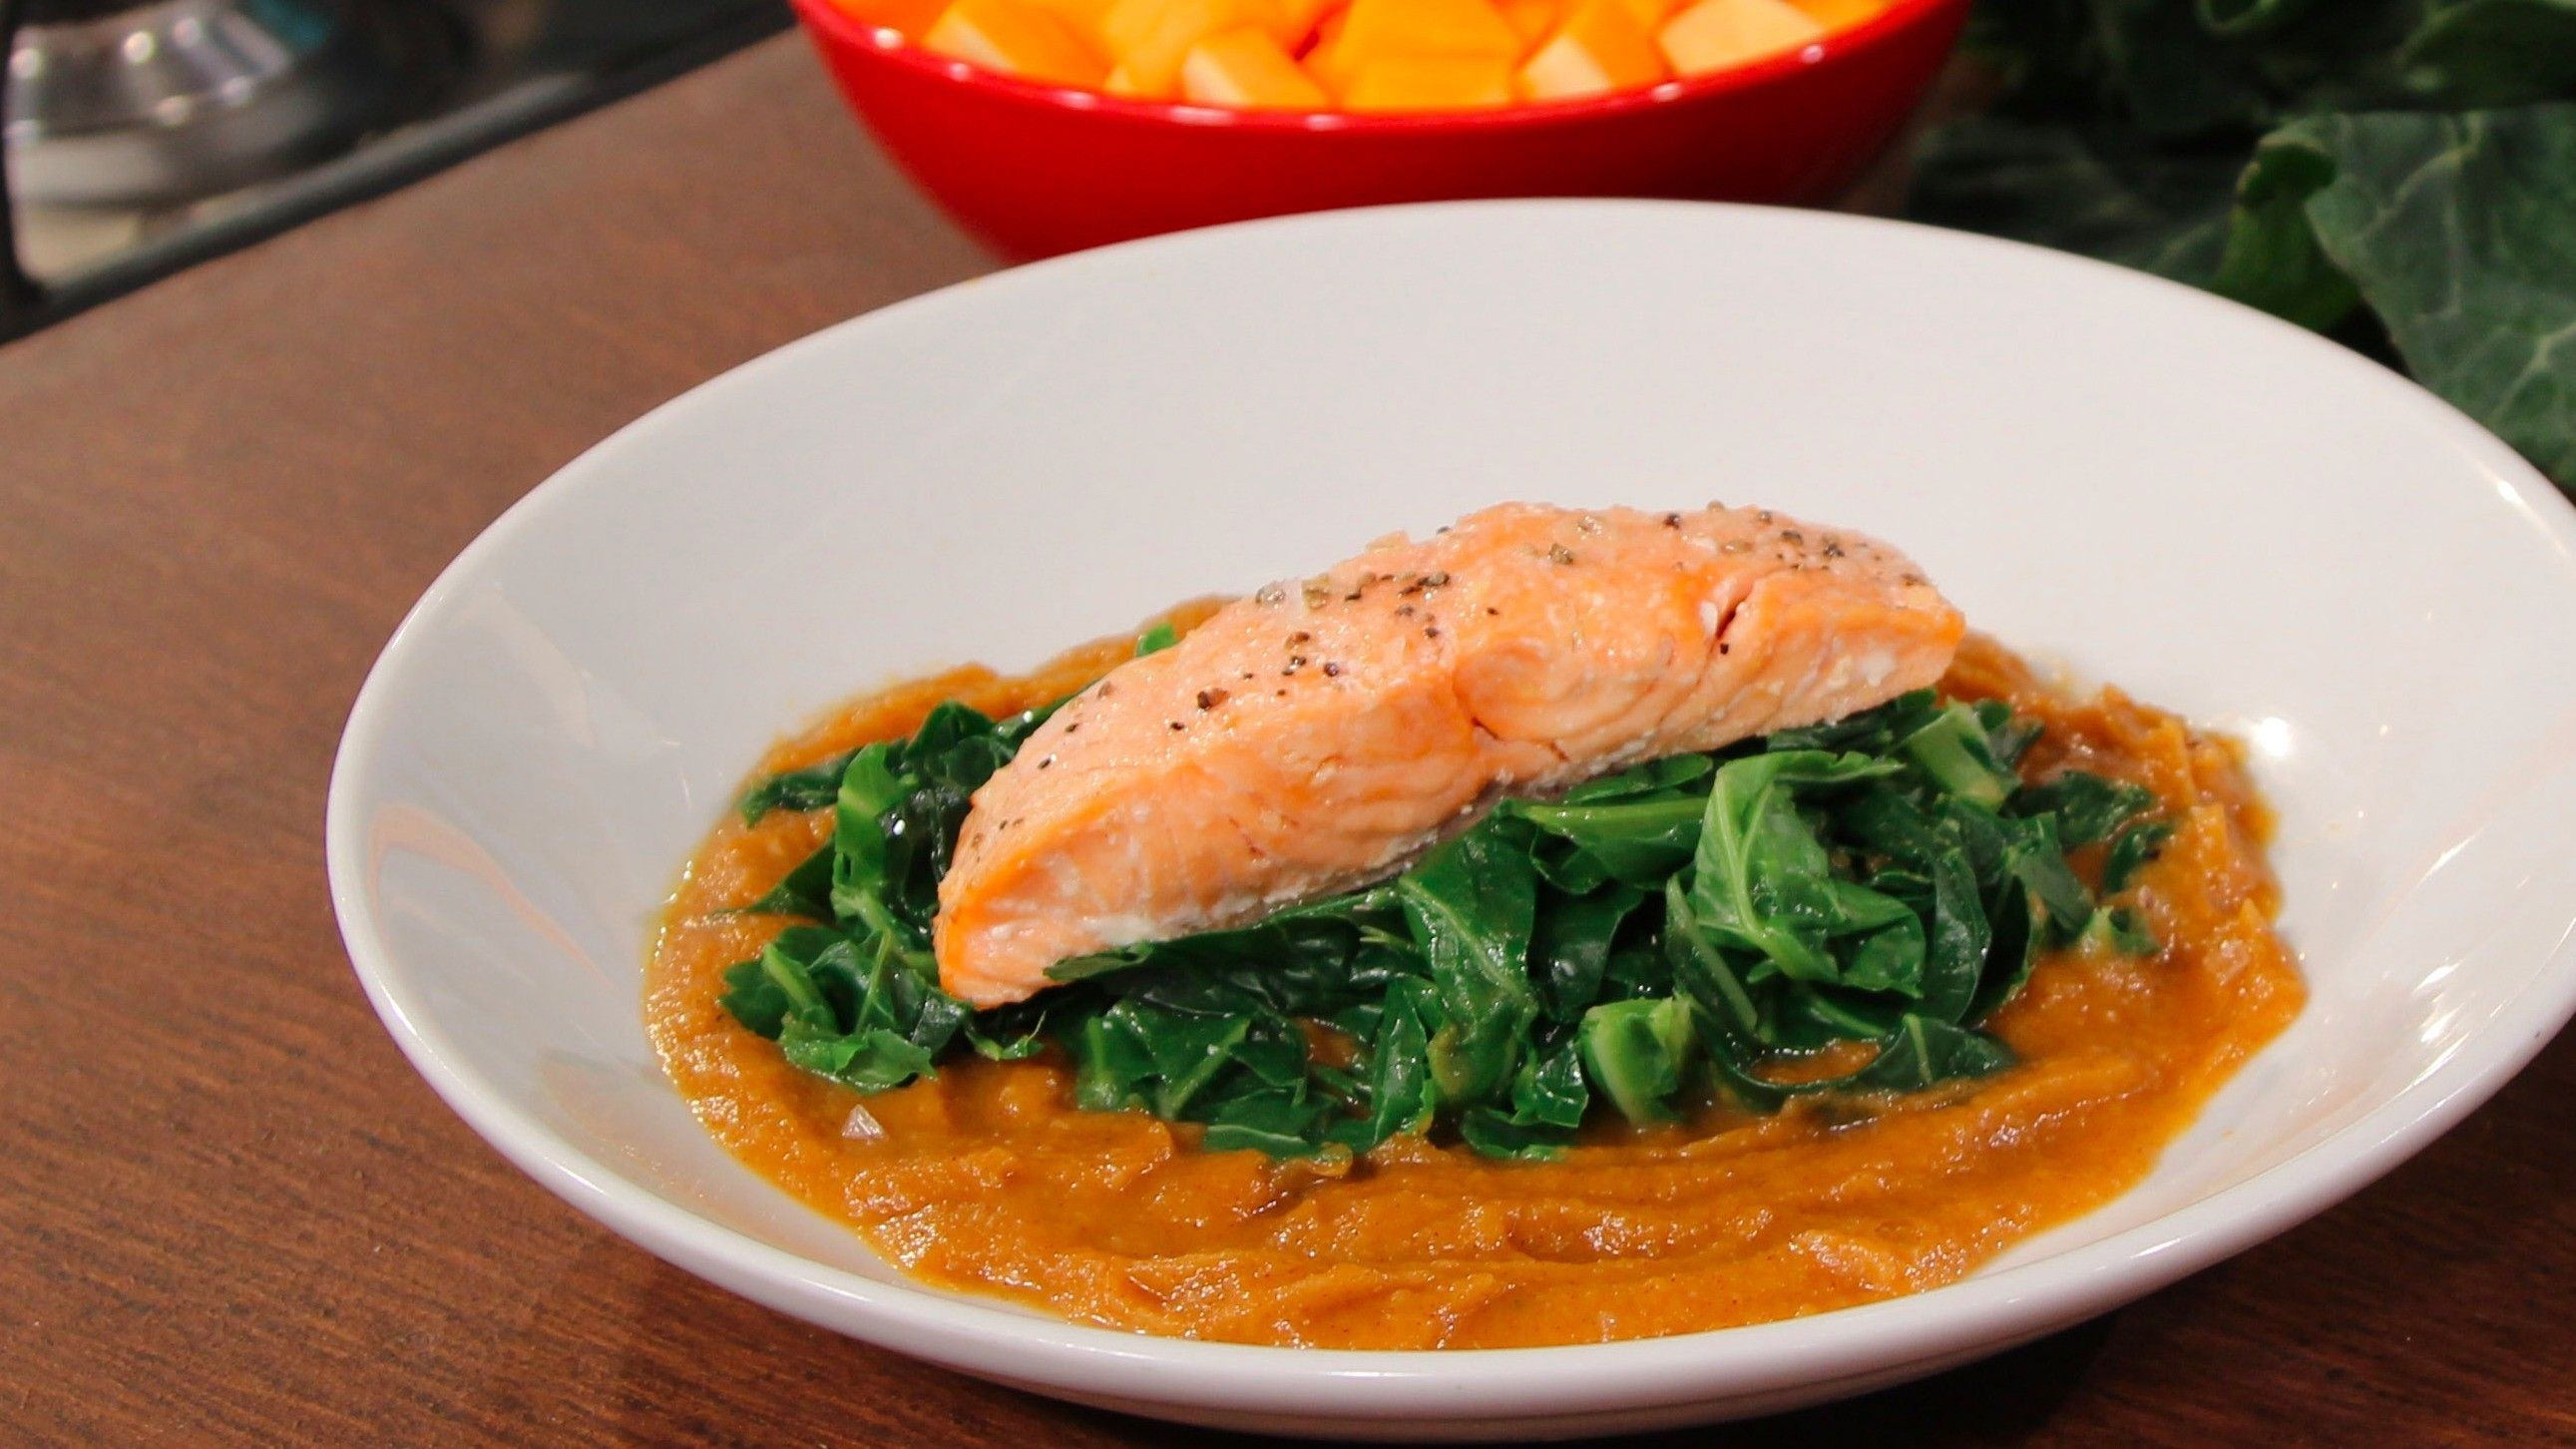 Salmon with spiced squash puree and greens